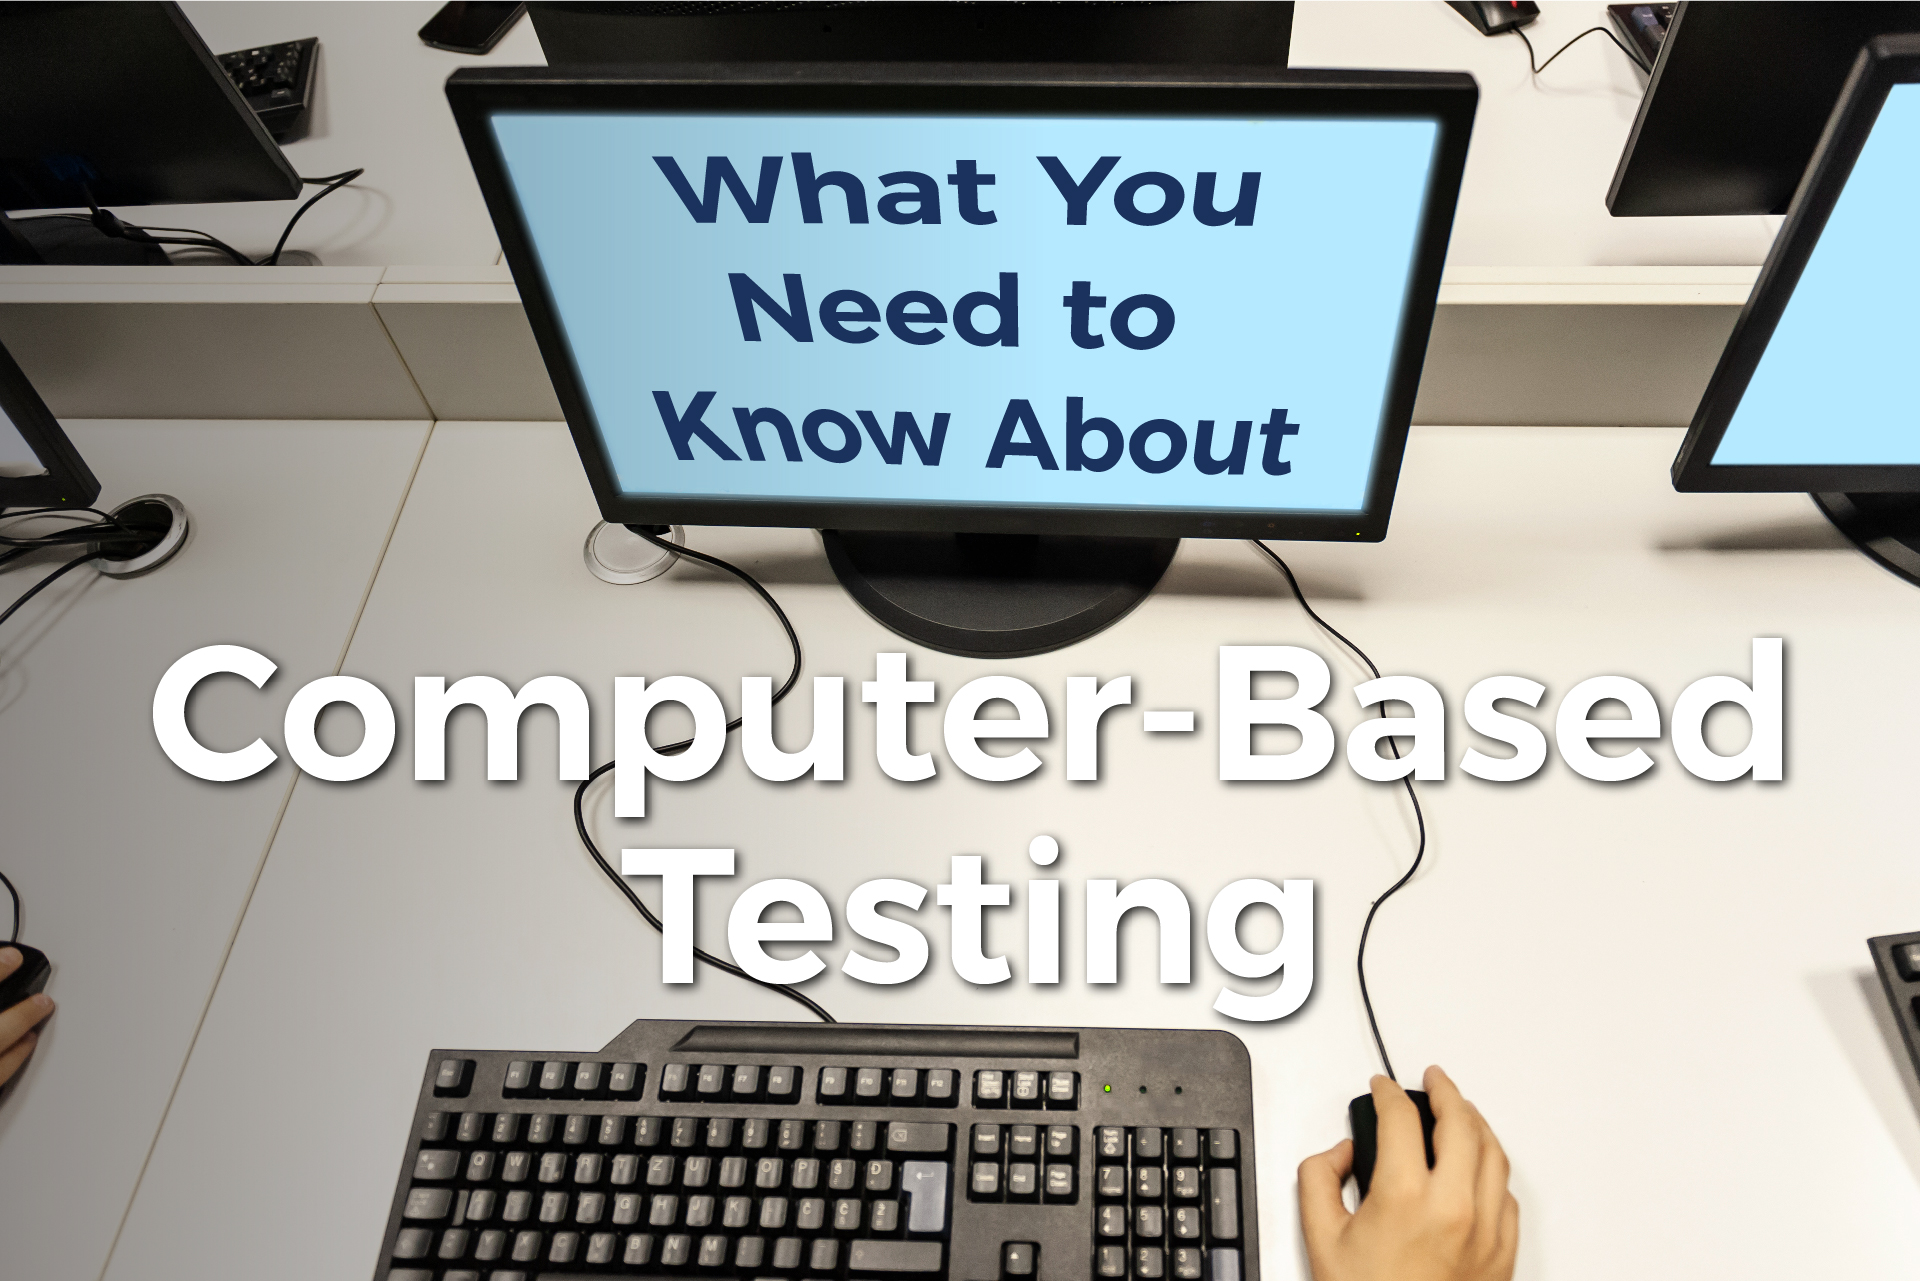 Computer Based Testing for the ACT